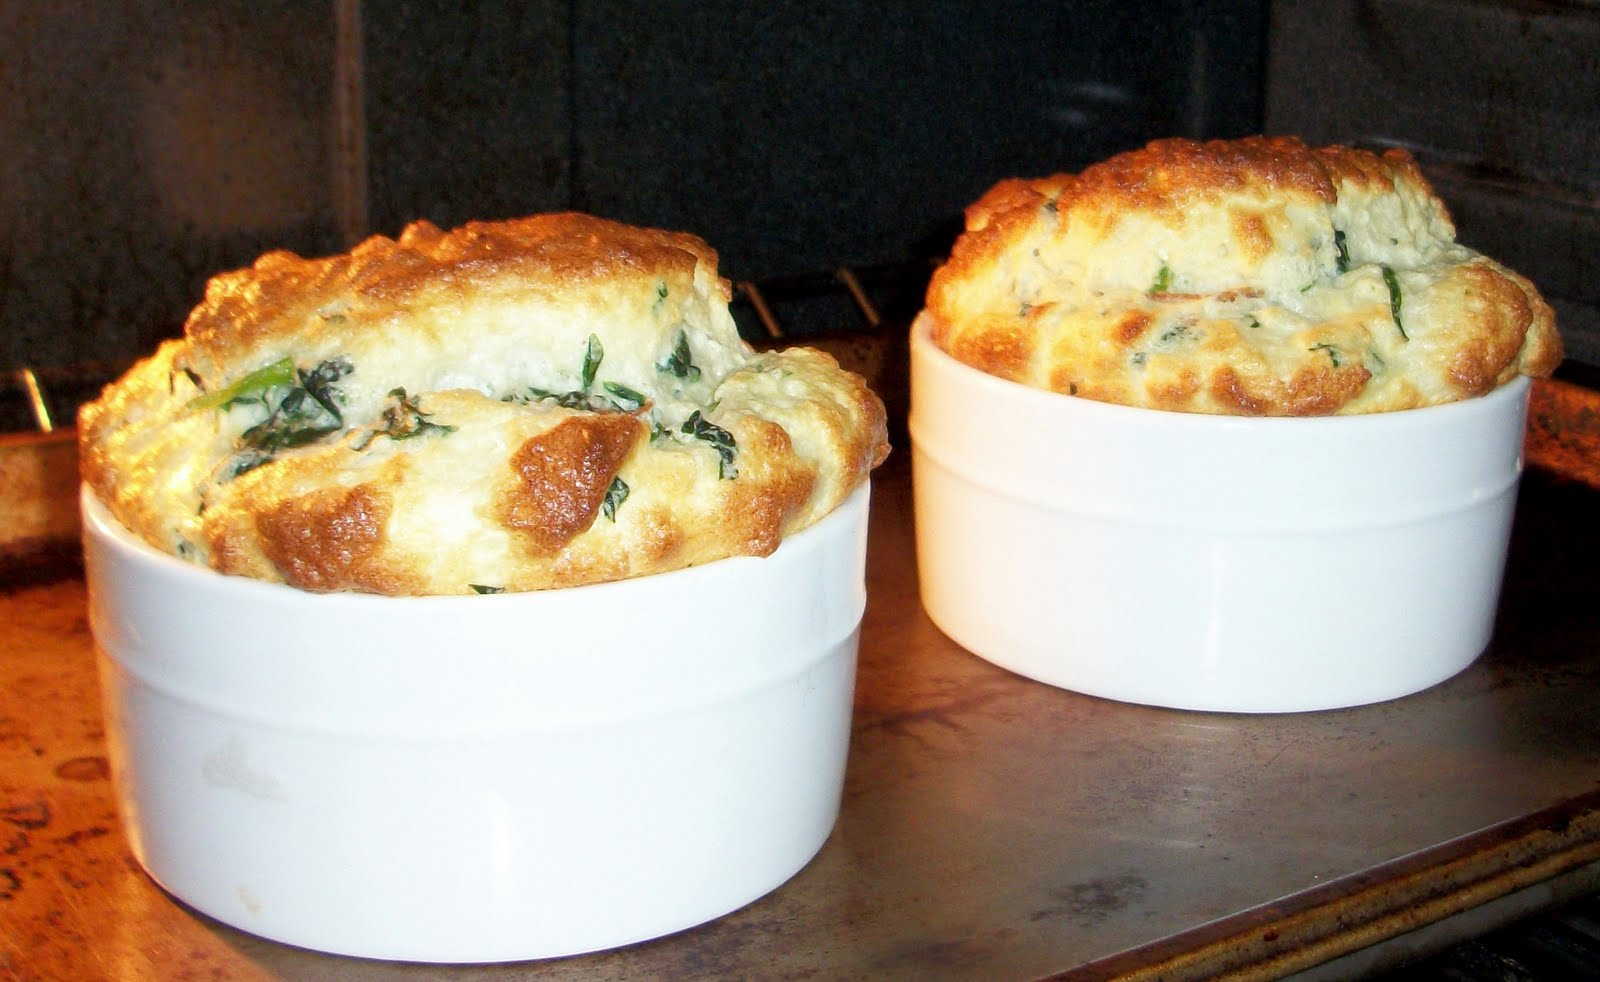 Chef Bob Presents: Cheddar Bacon And Scallion Souffle